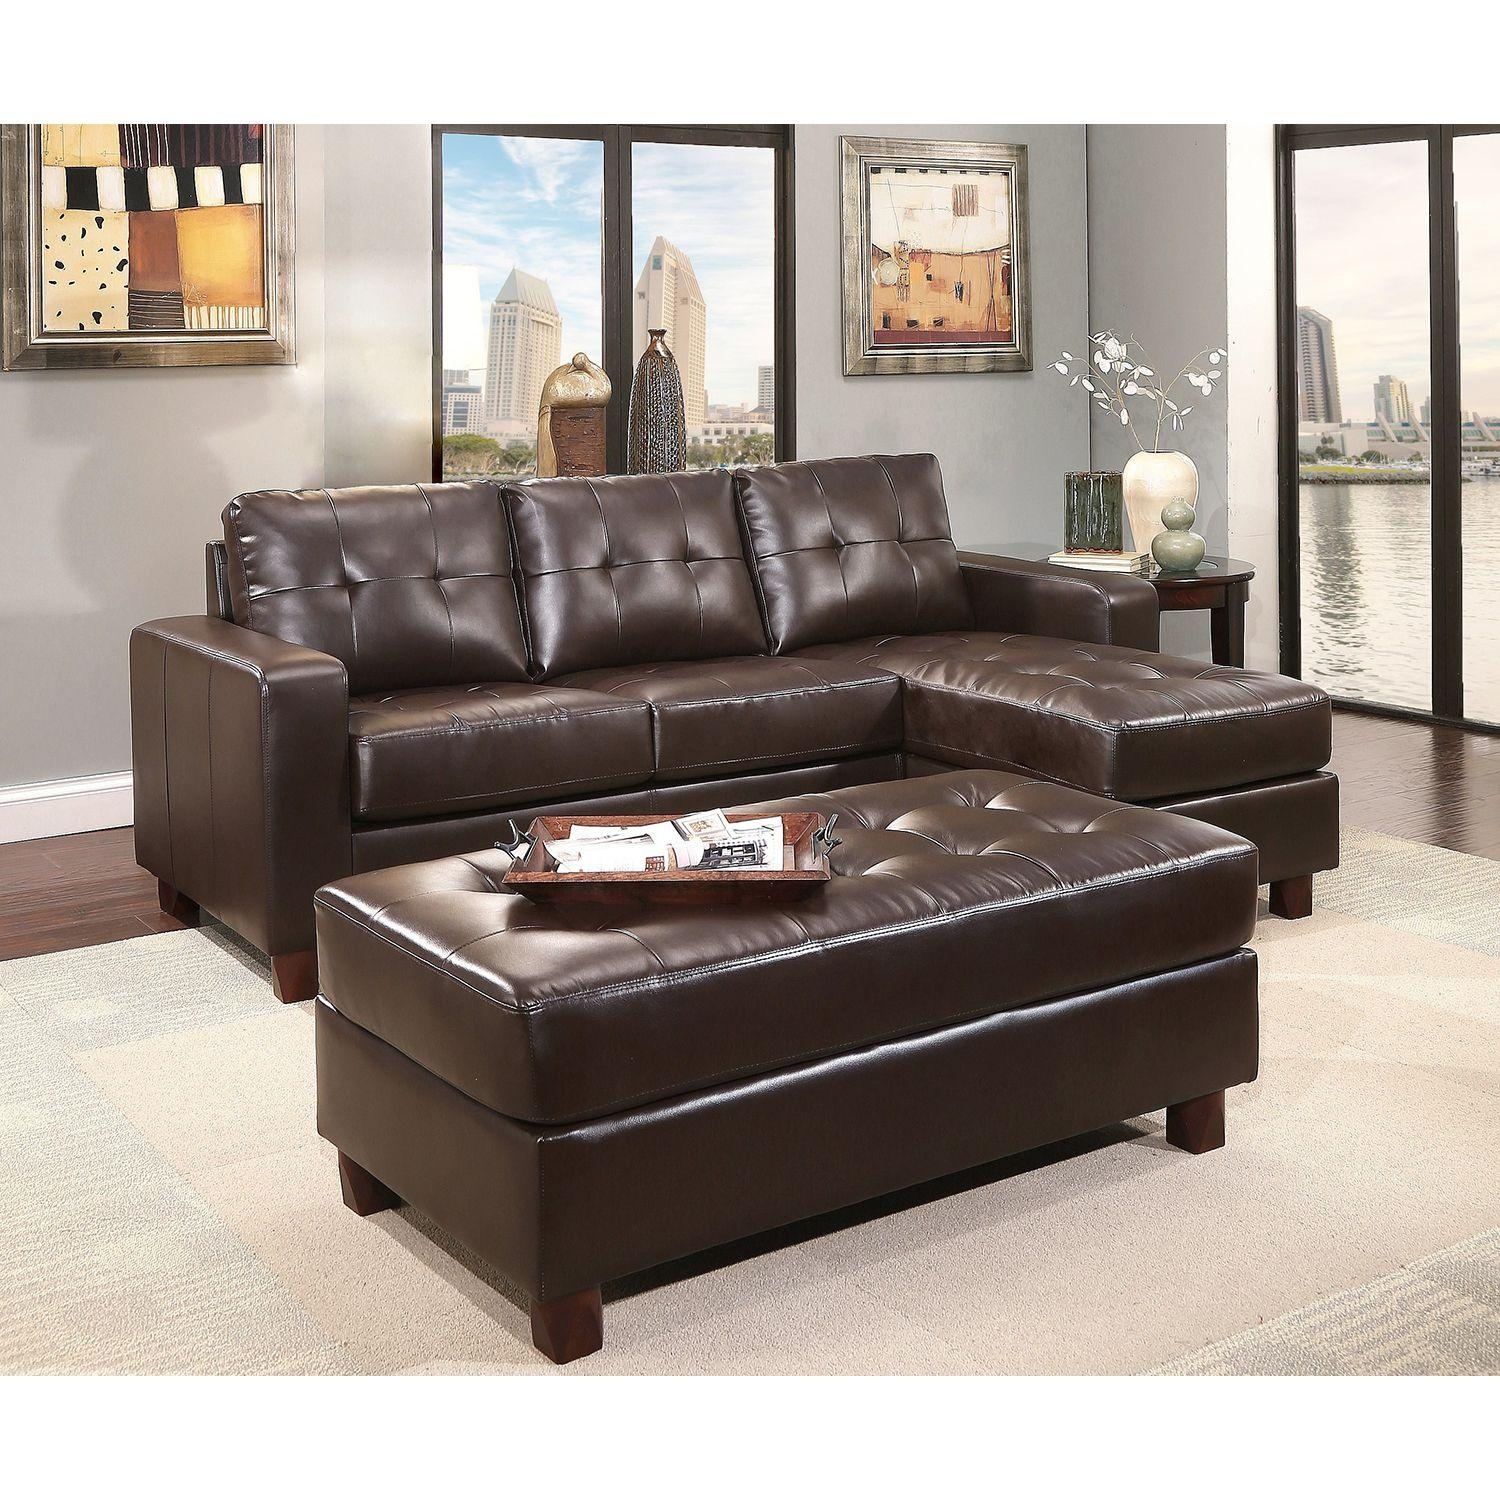 Large Sectional Sofa With Ottoman | Stools, Chairs, Seat, And Inside Sectional With Oversized Ottoman (Photo 15 of 20)